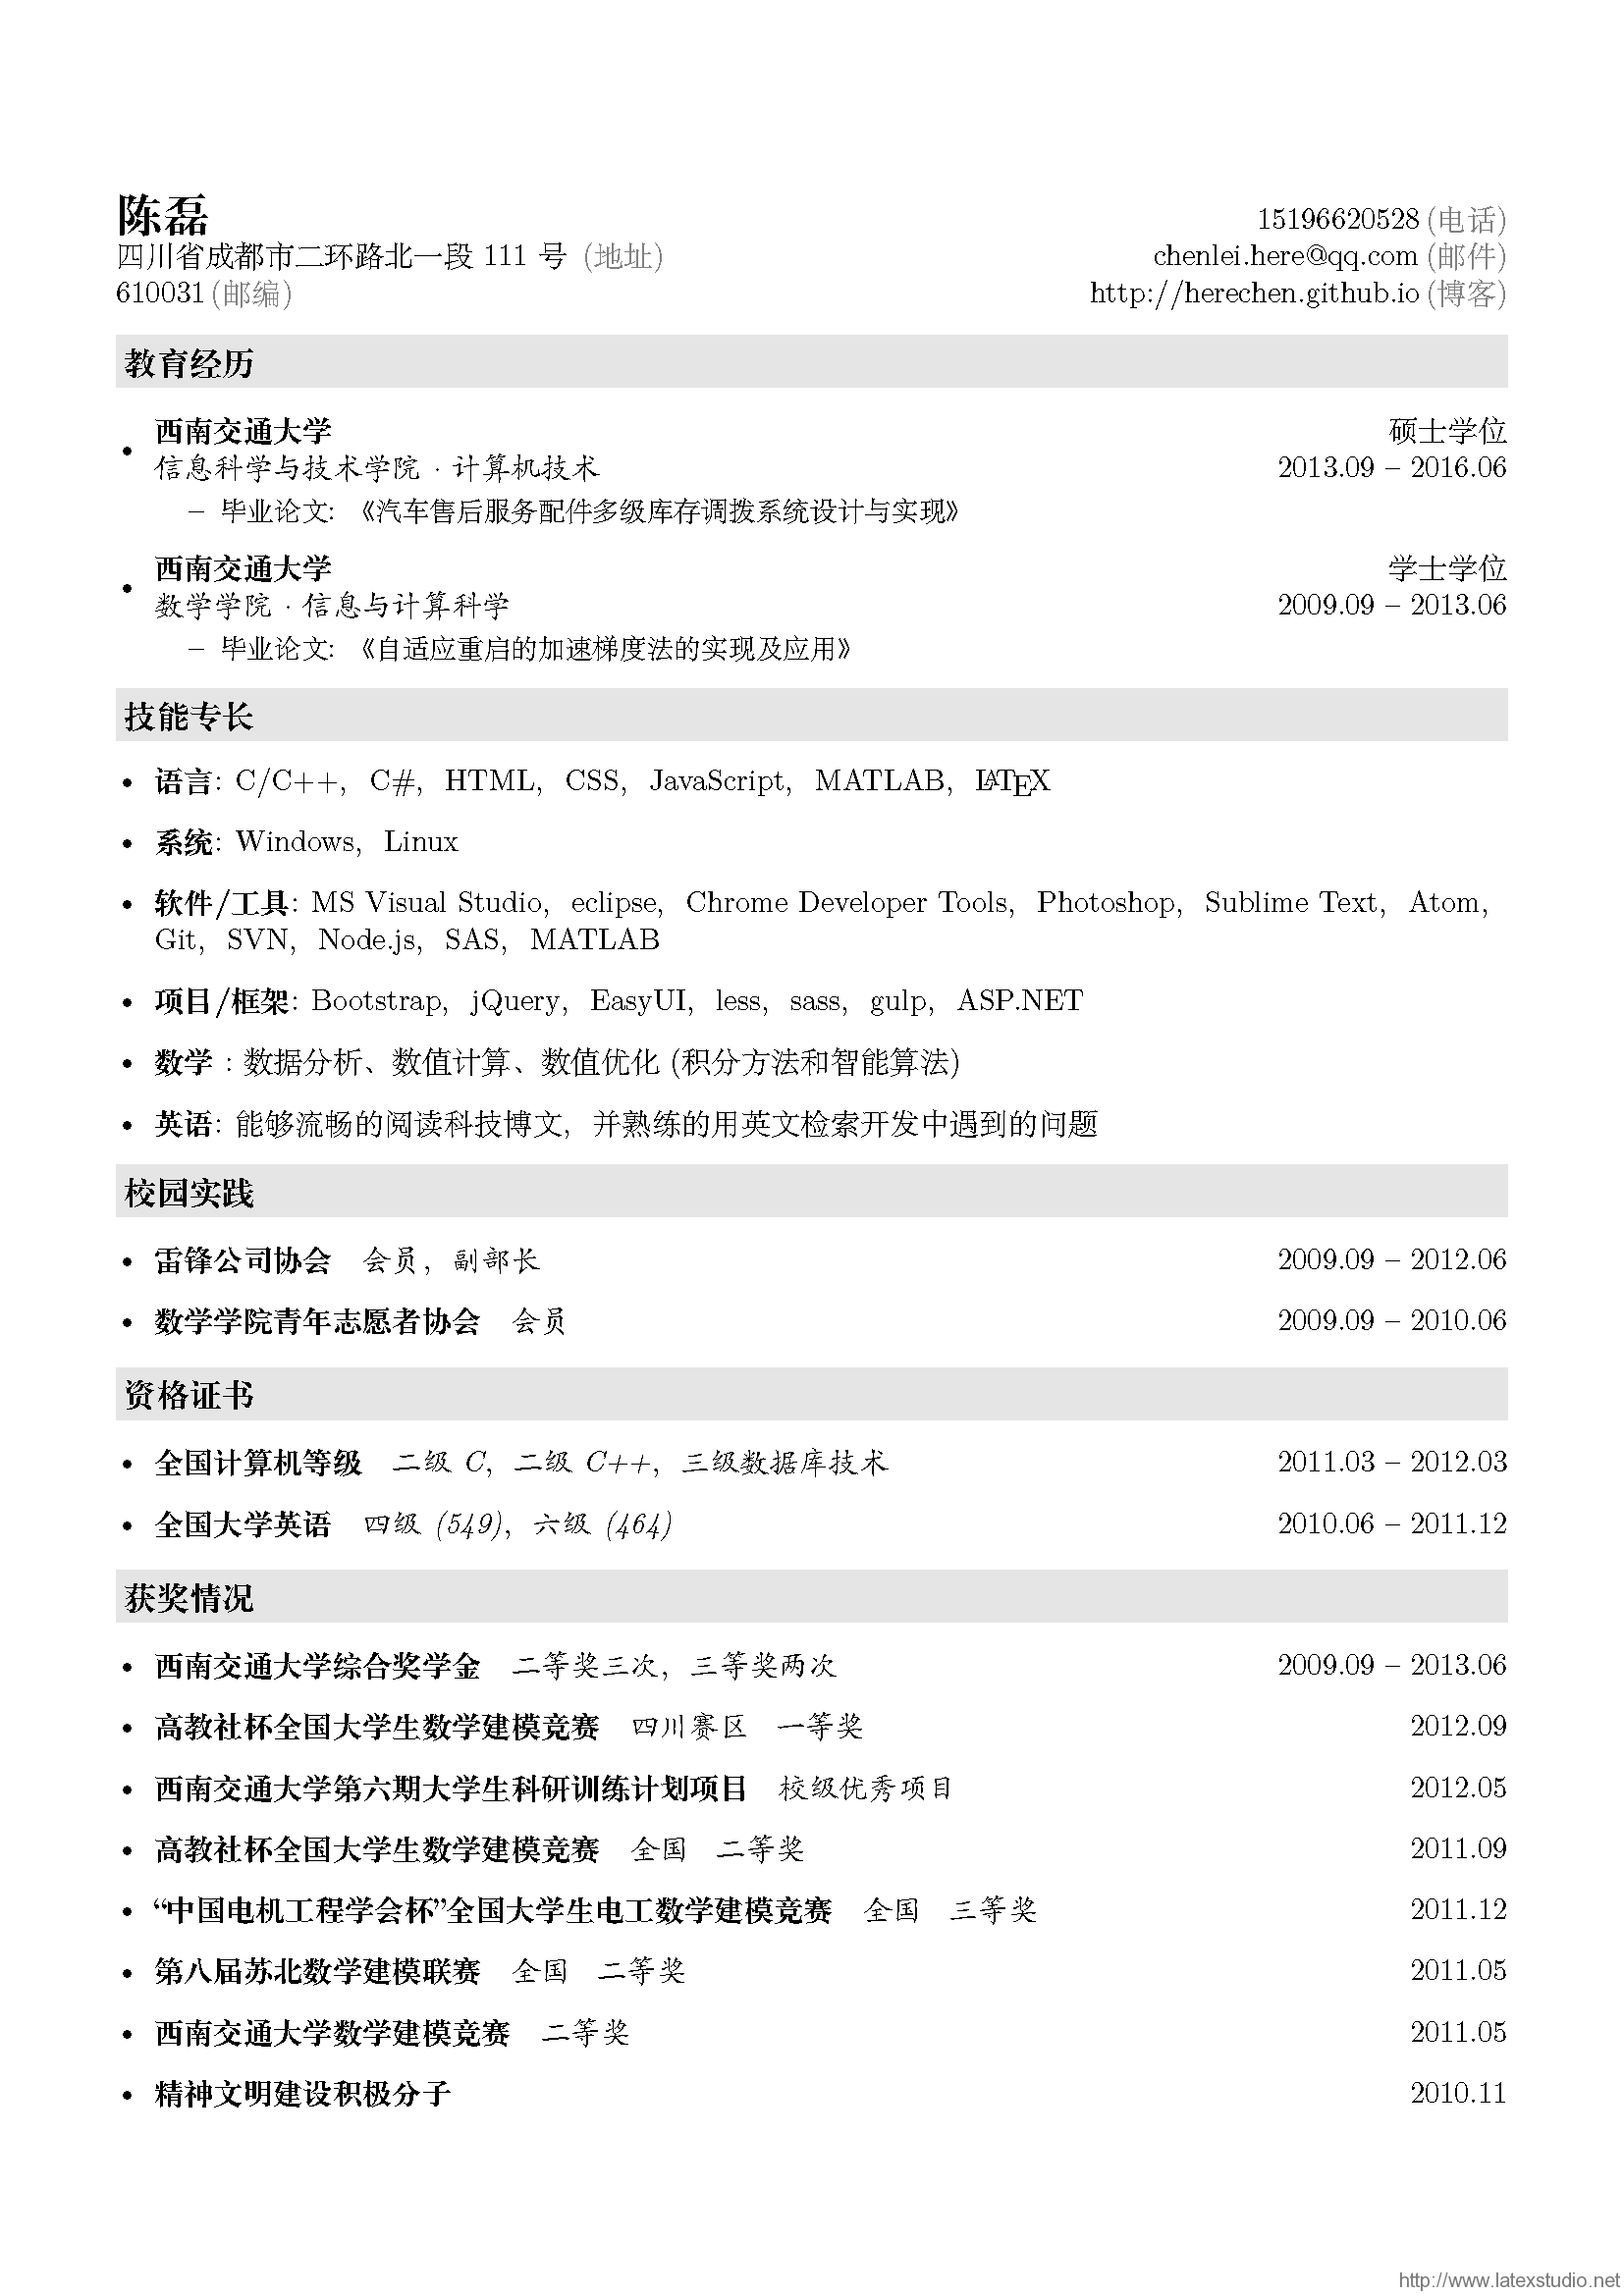 resume_page_1